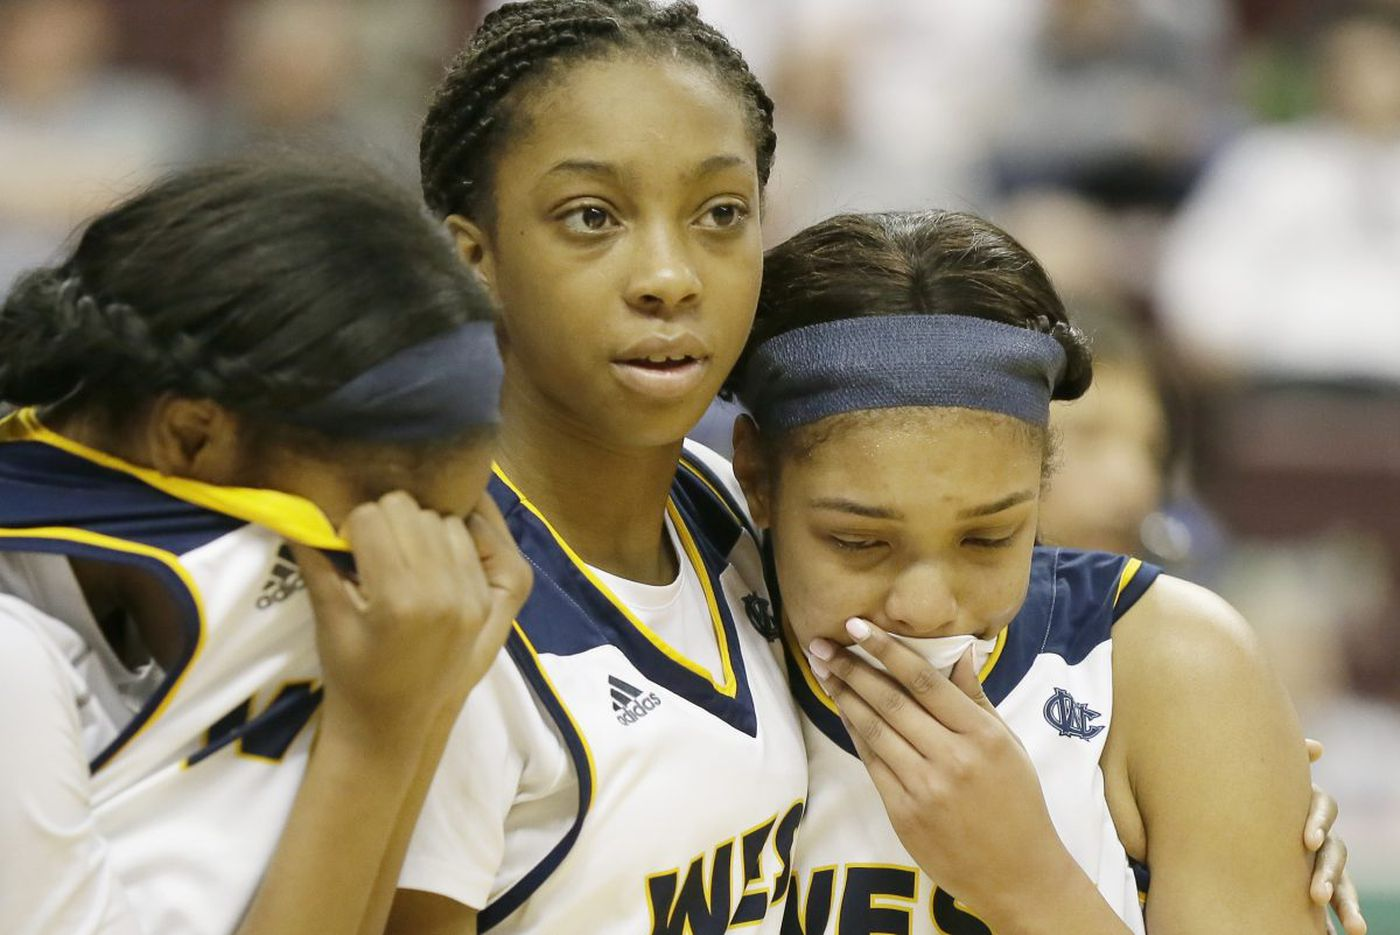 West Catholic girls can't find mark in PIAA Class 2A basketball final